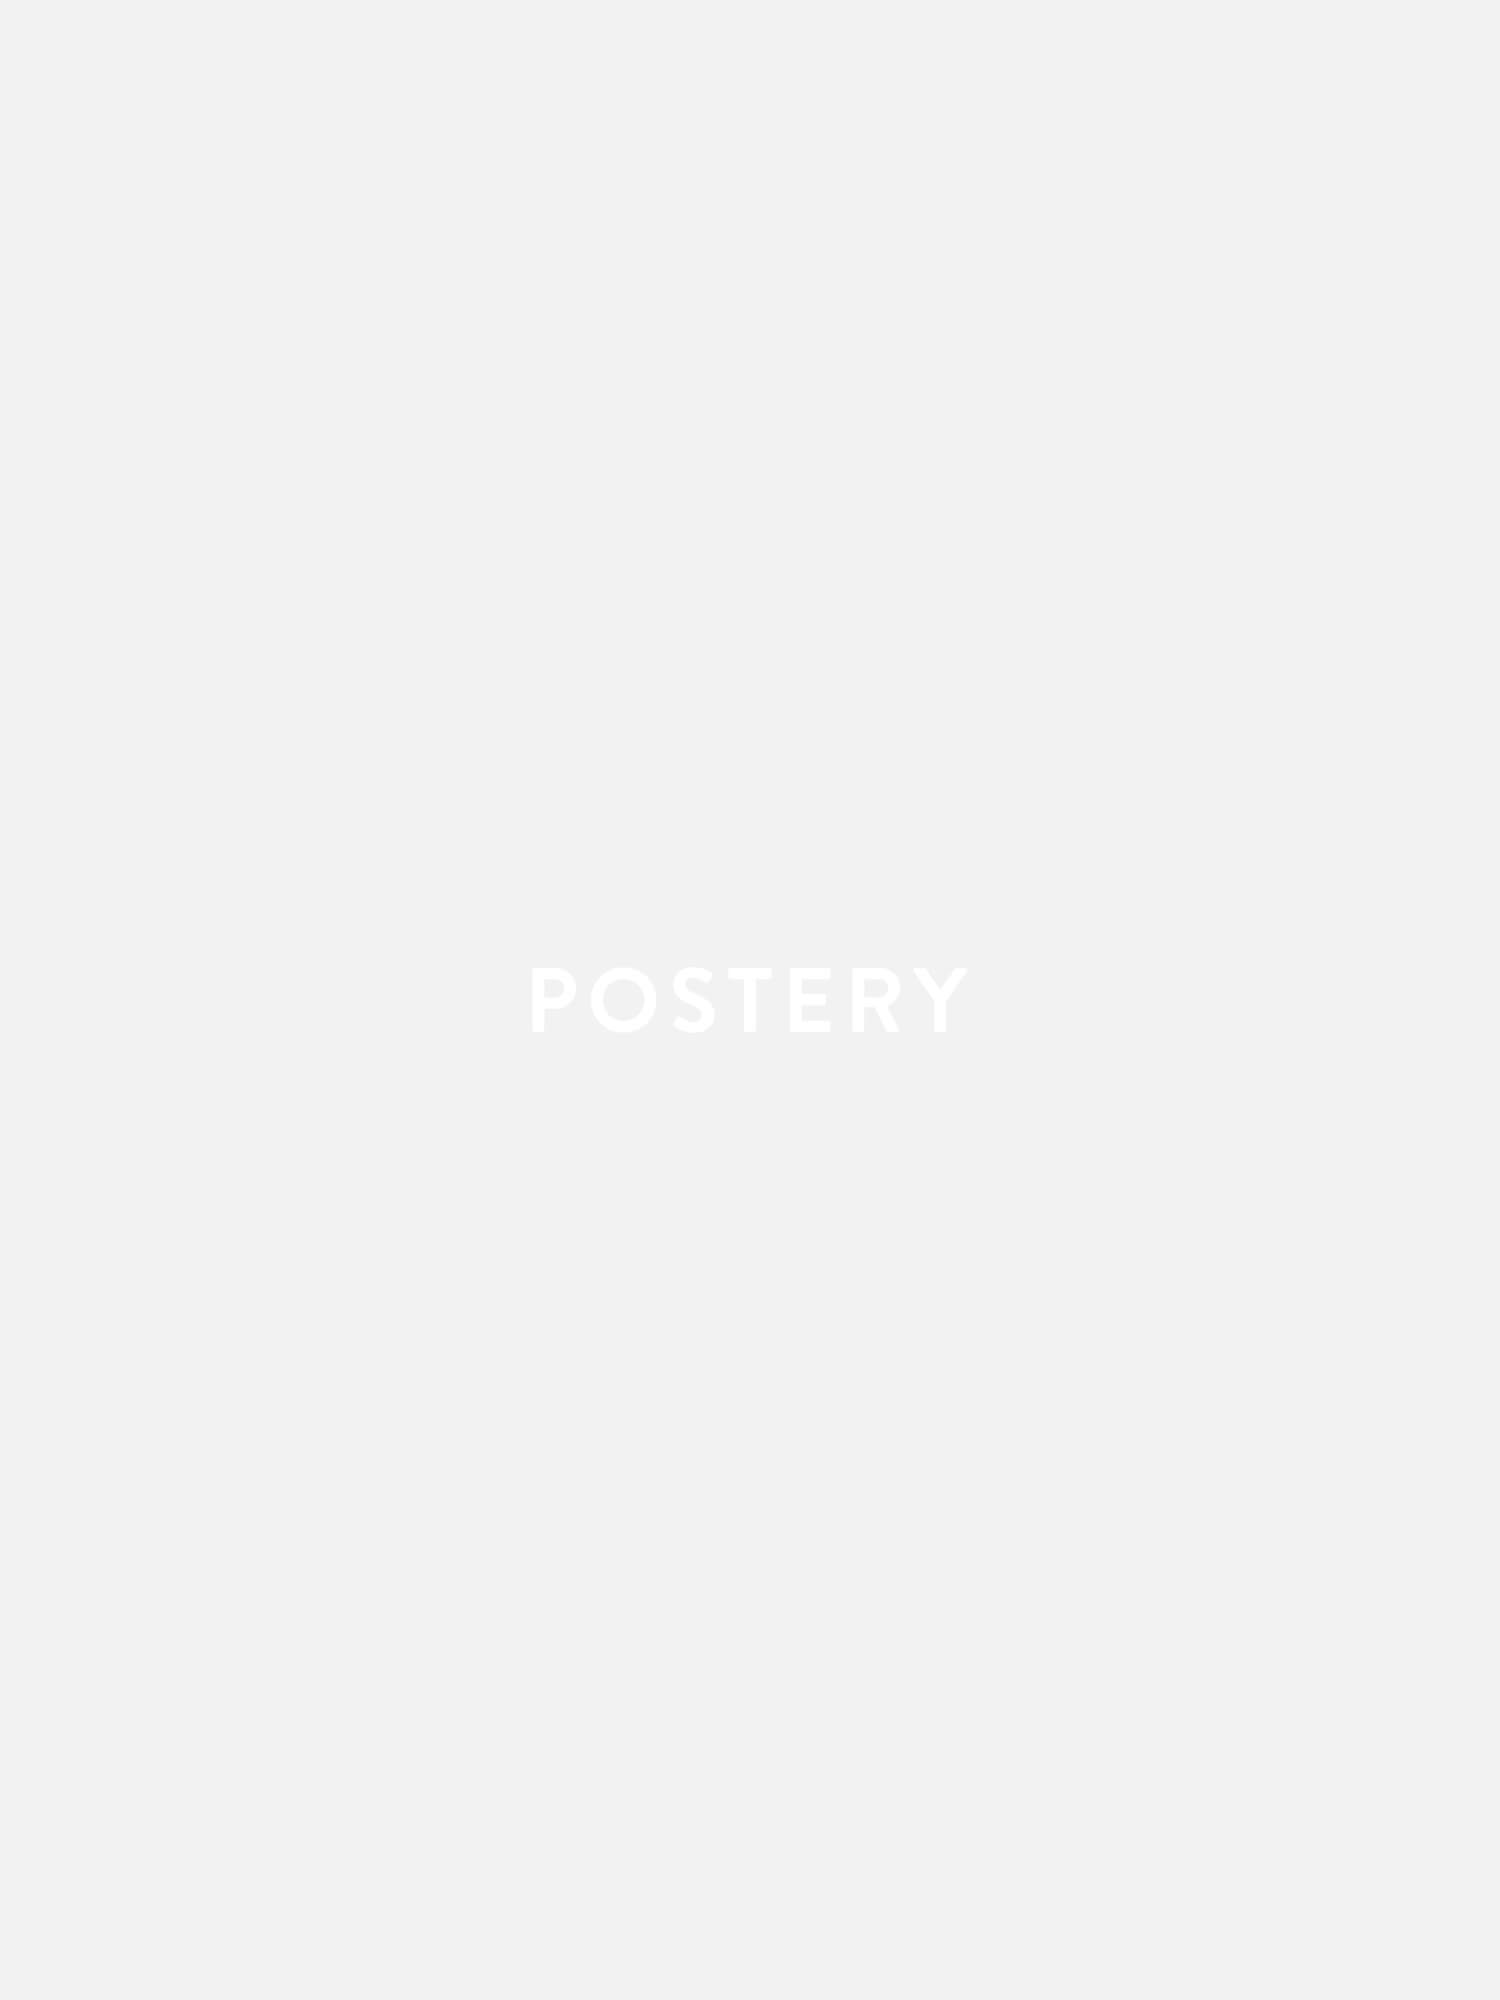 Gothenburg Map Poster